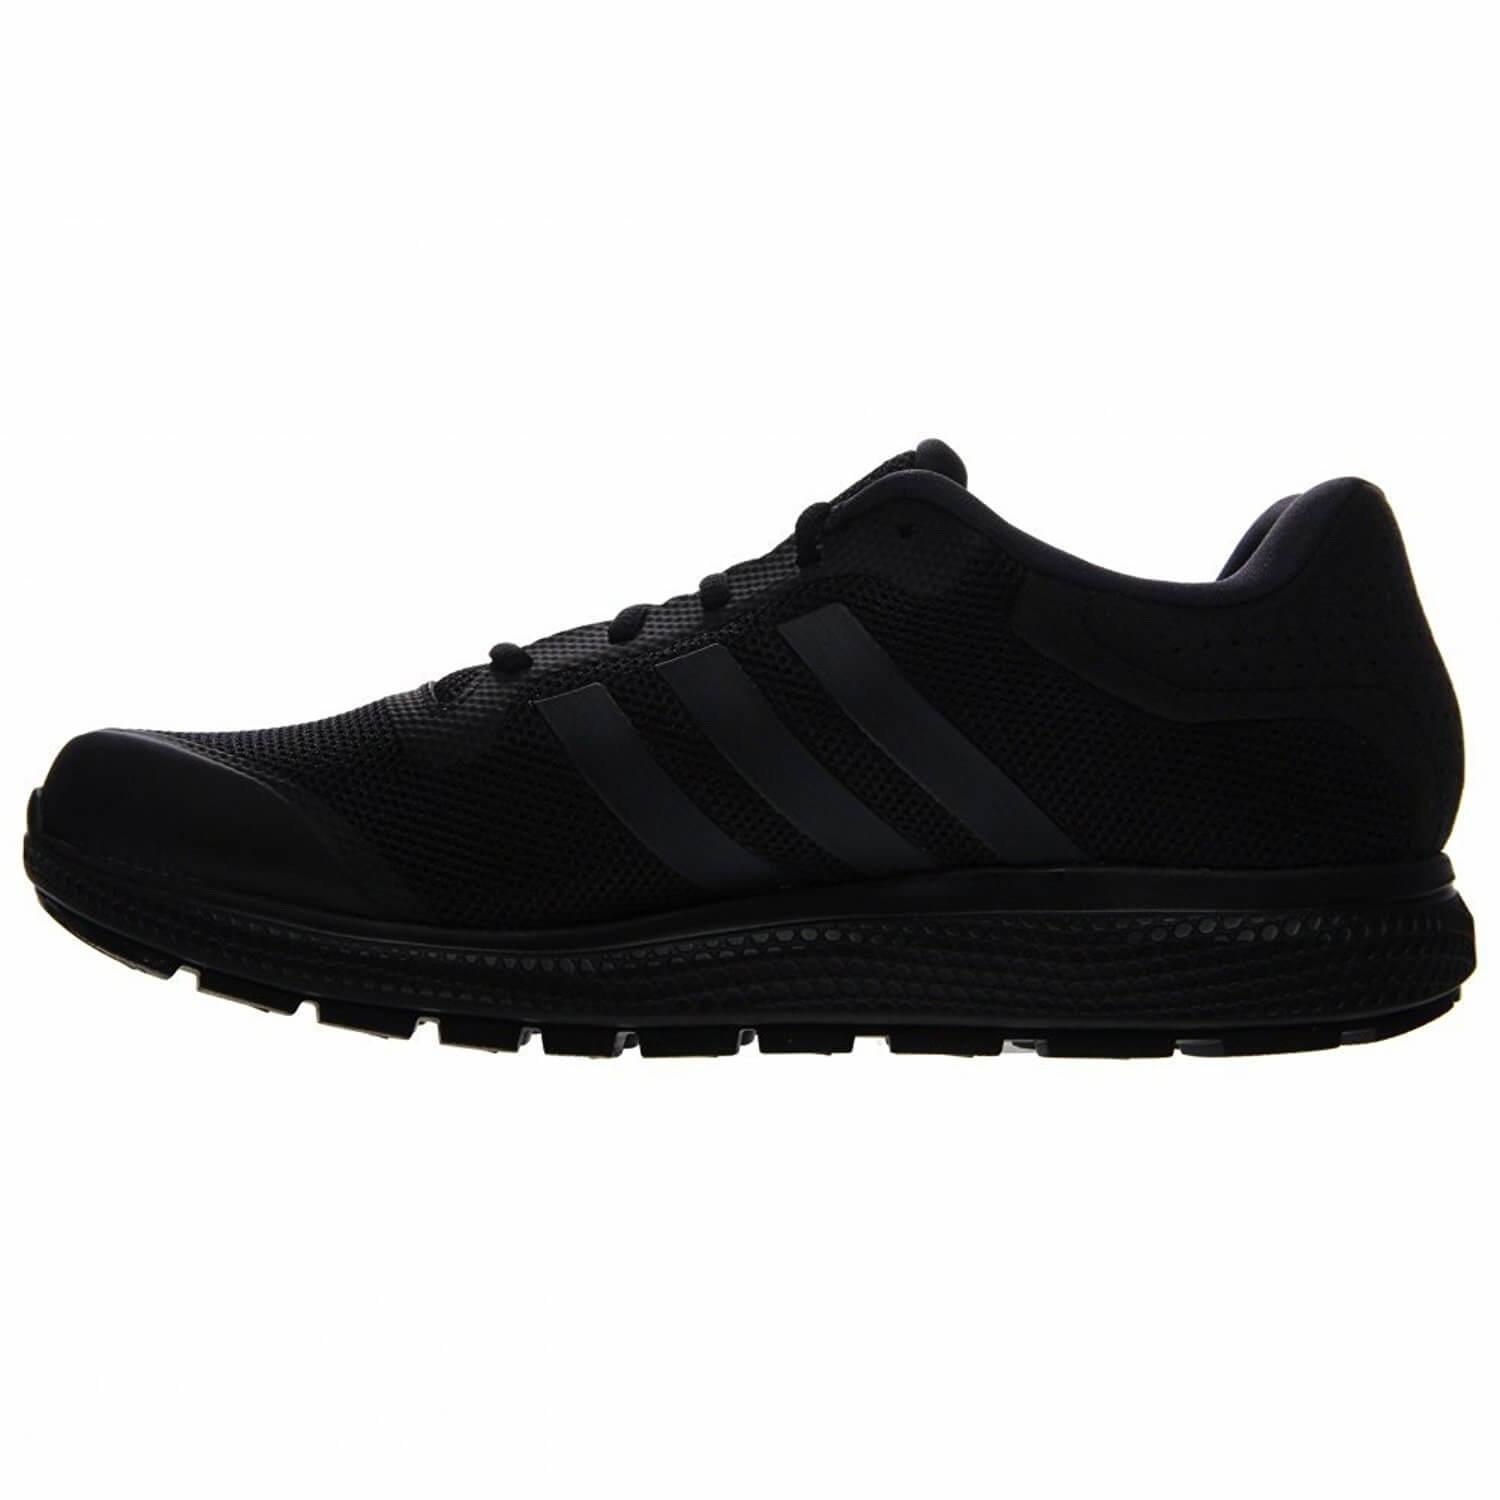 Adidas Energy Bounce right to left